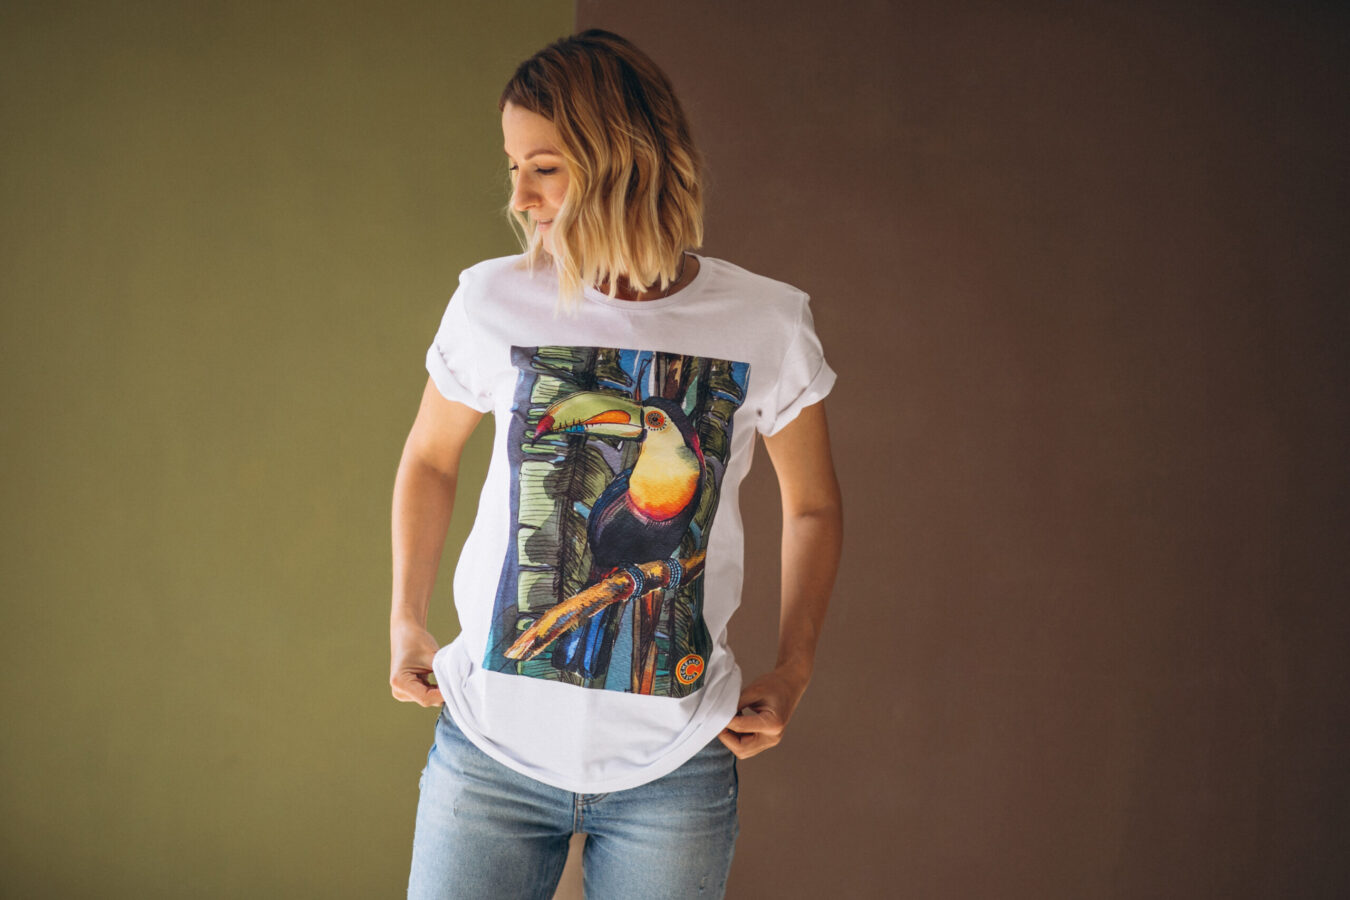 Lady waering custom printed cotton com t-shirt which she has bought online in Thailand